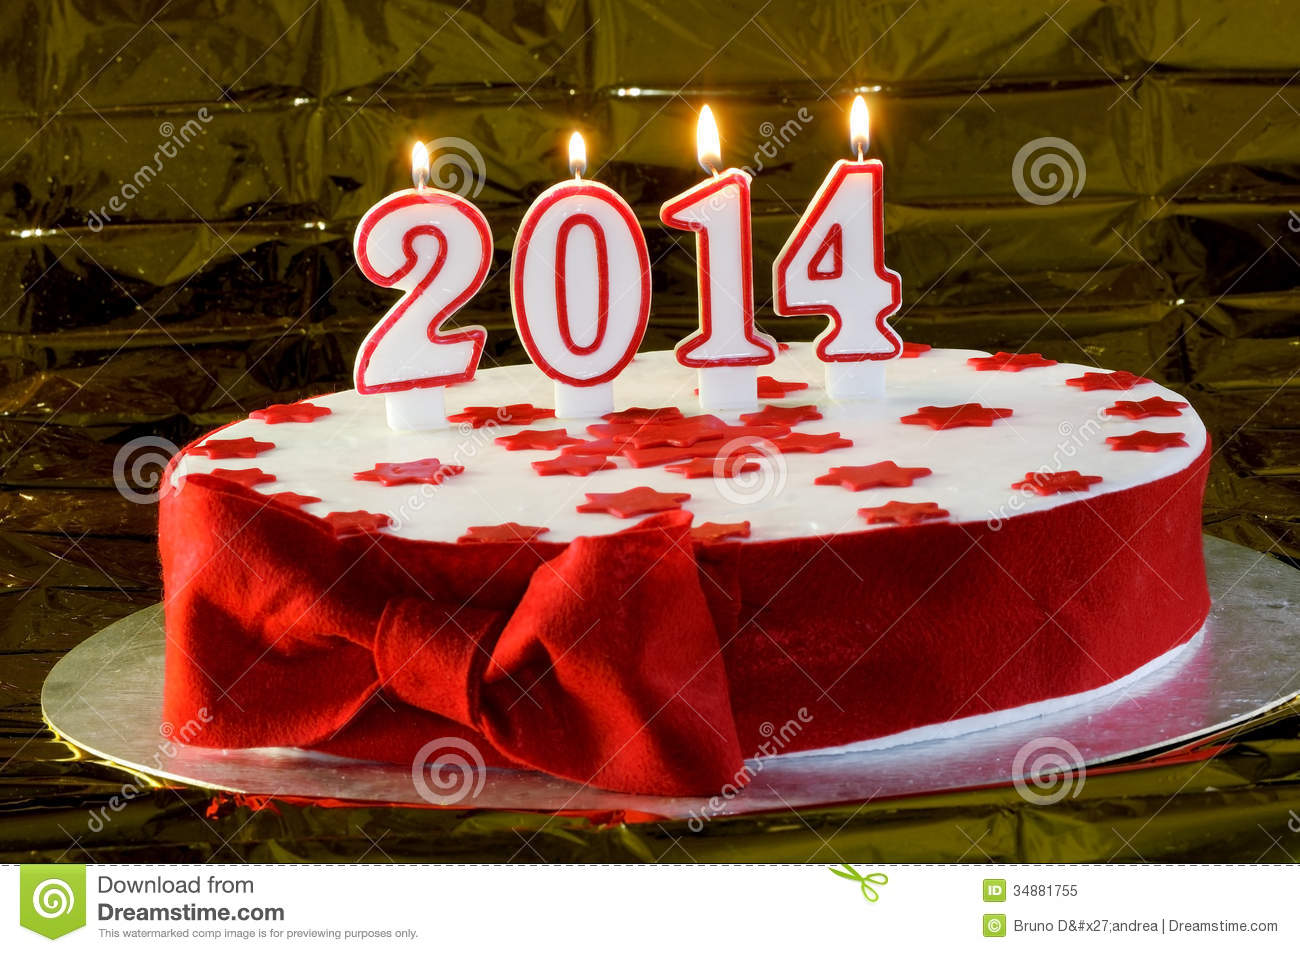 New Beautiful Cake Images : Beautiful Cake For The New Year Stock Image - Image: 34881755